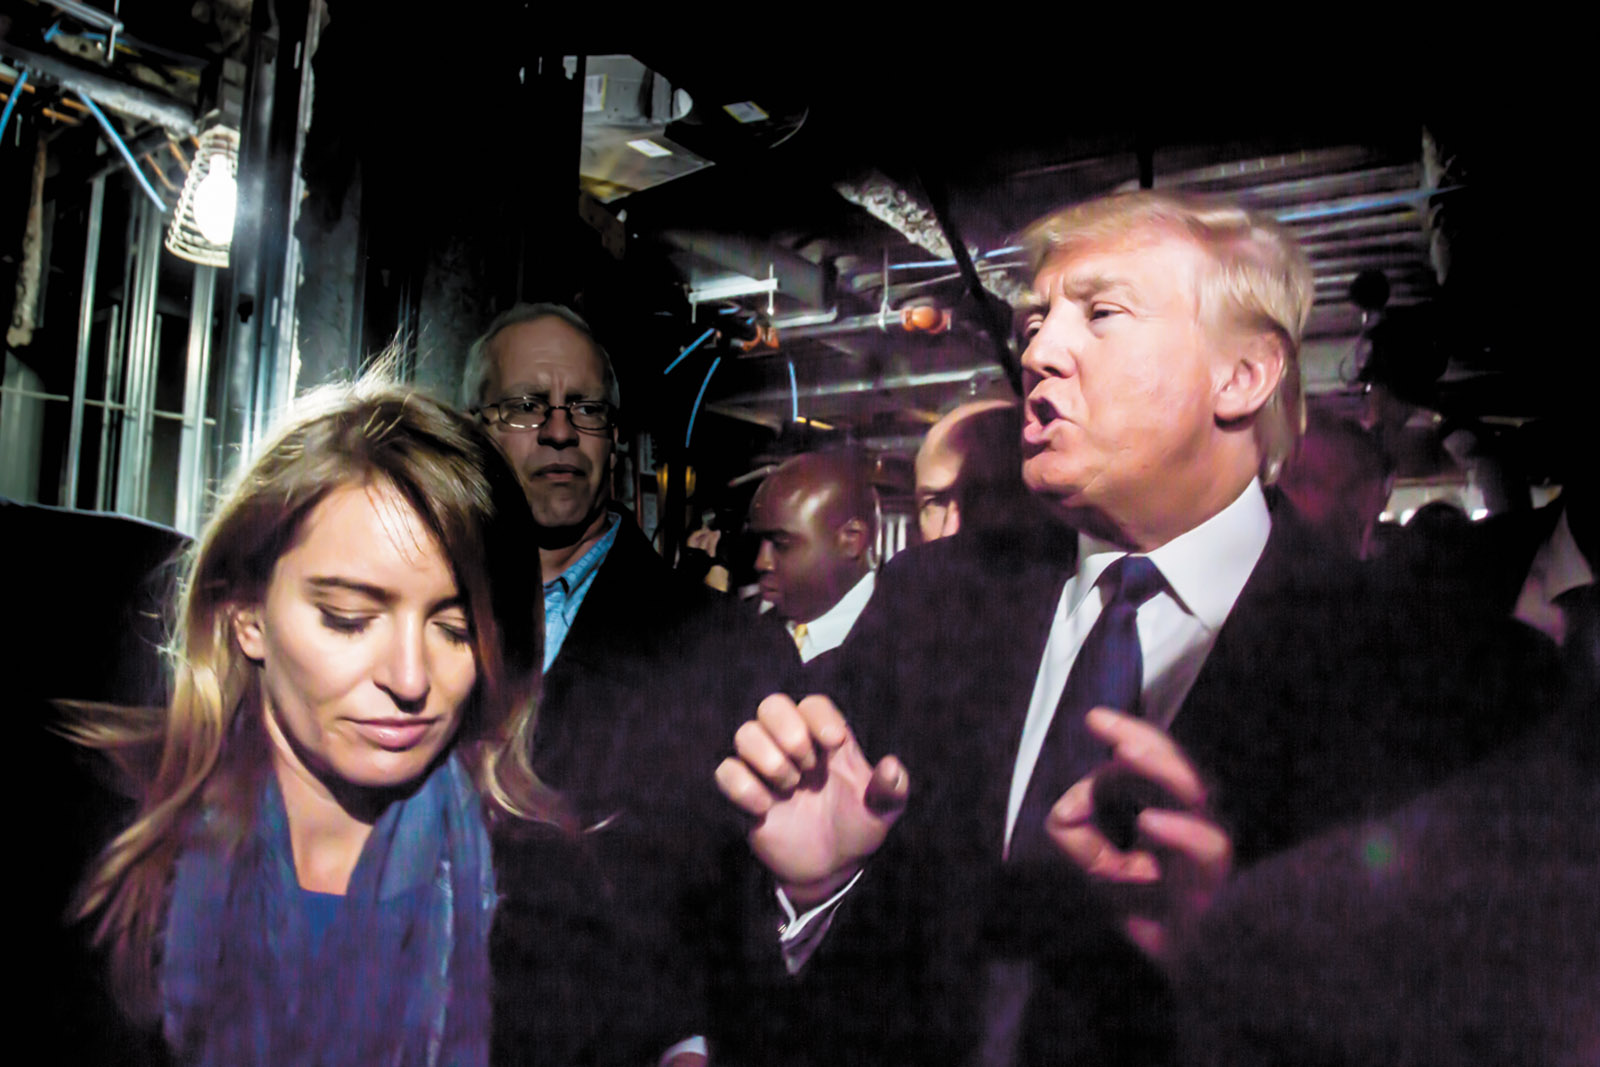 NBC News correspondent Katy Tur on the campaign trail with Donald Trump, Washington, D.C., March 2016